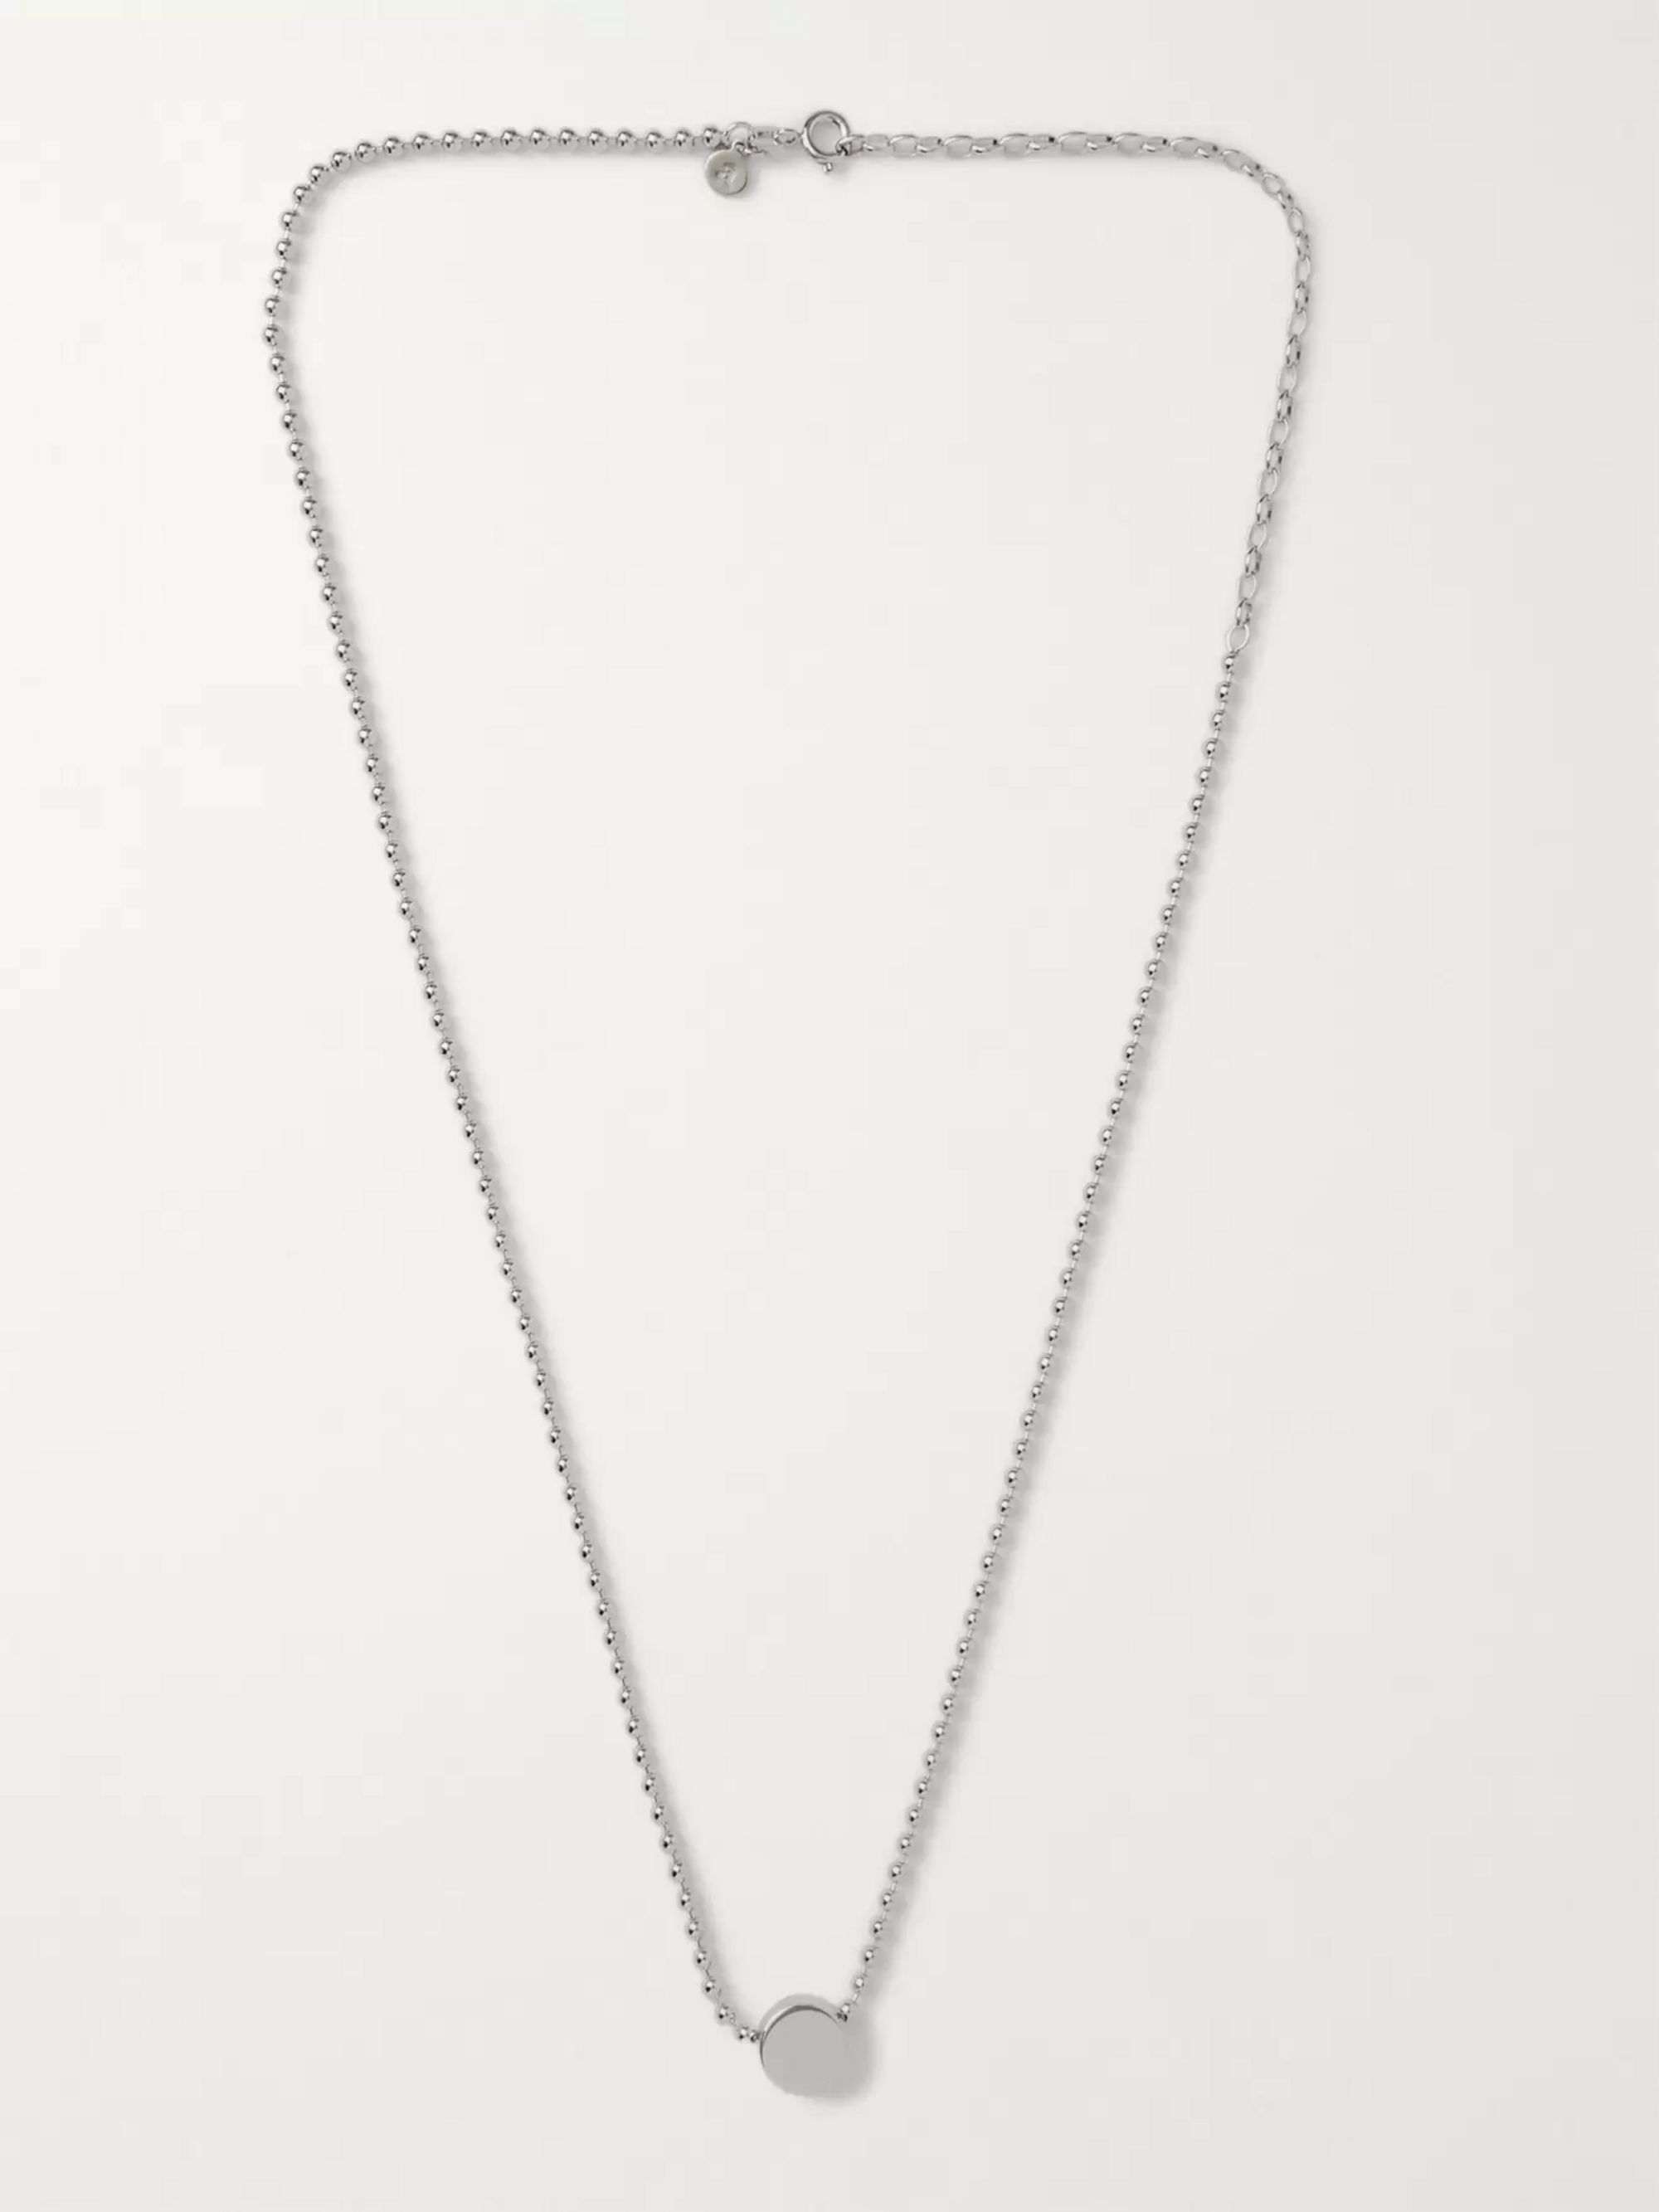 Alice Made This Dot Sterling Silver and Rhodium-Plated Necklace